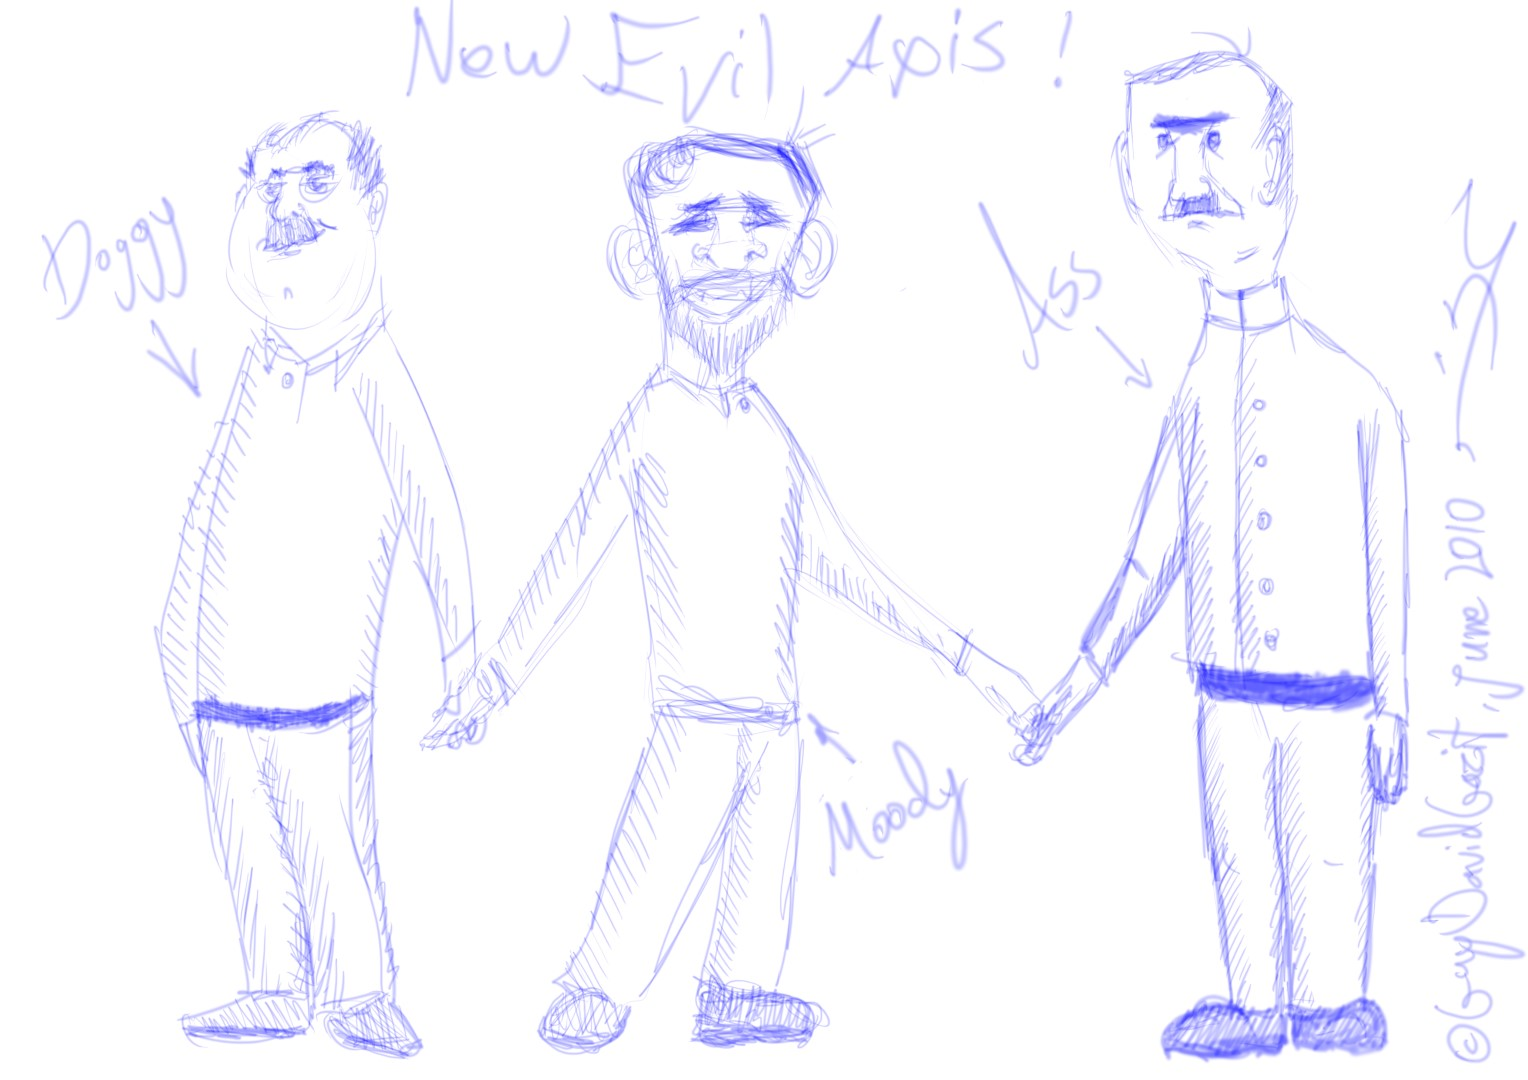 New-Axis-Evil WIP